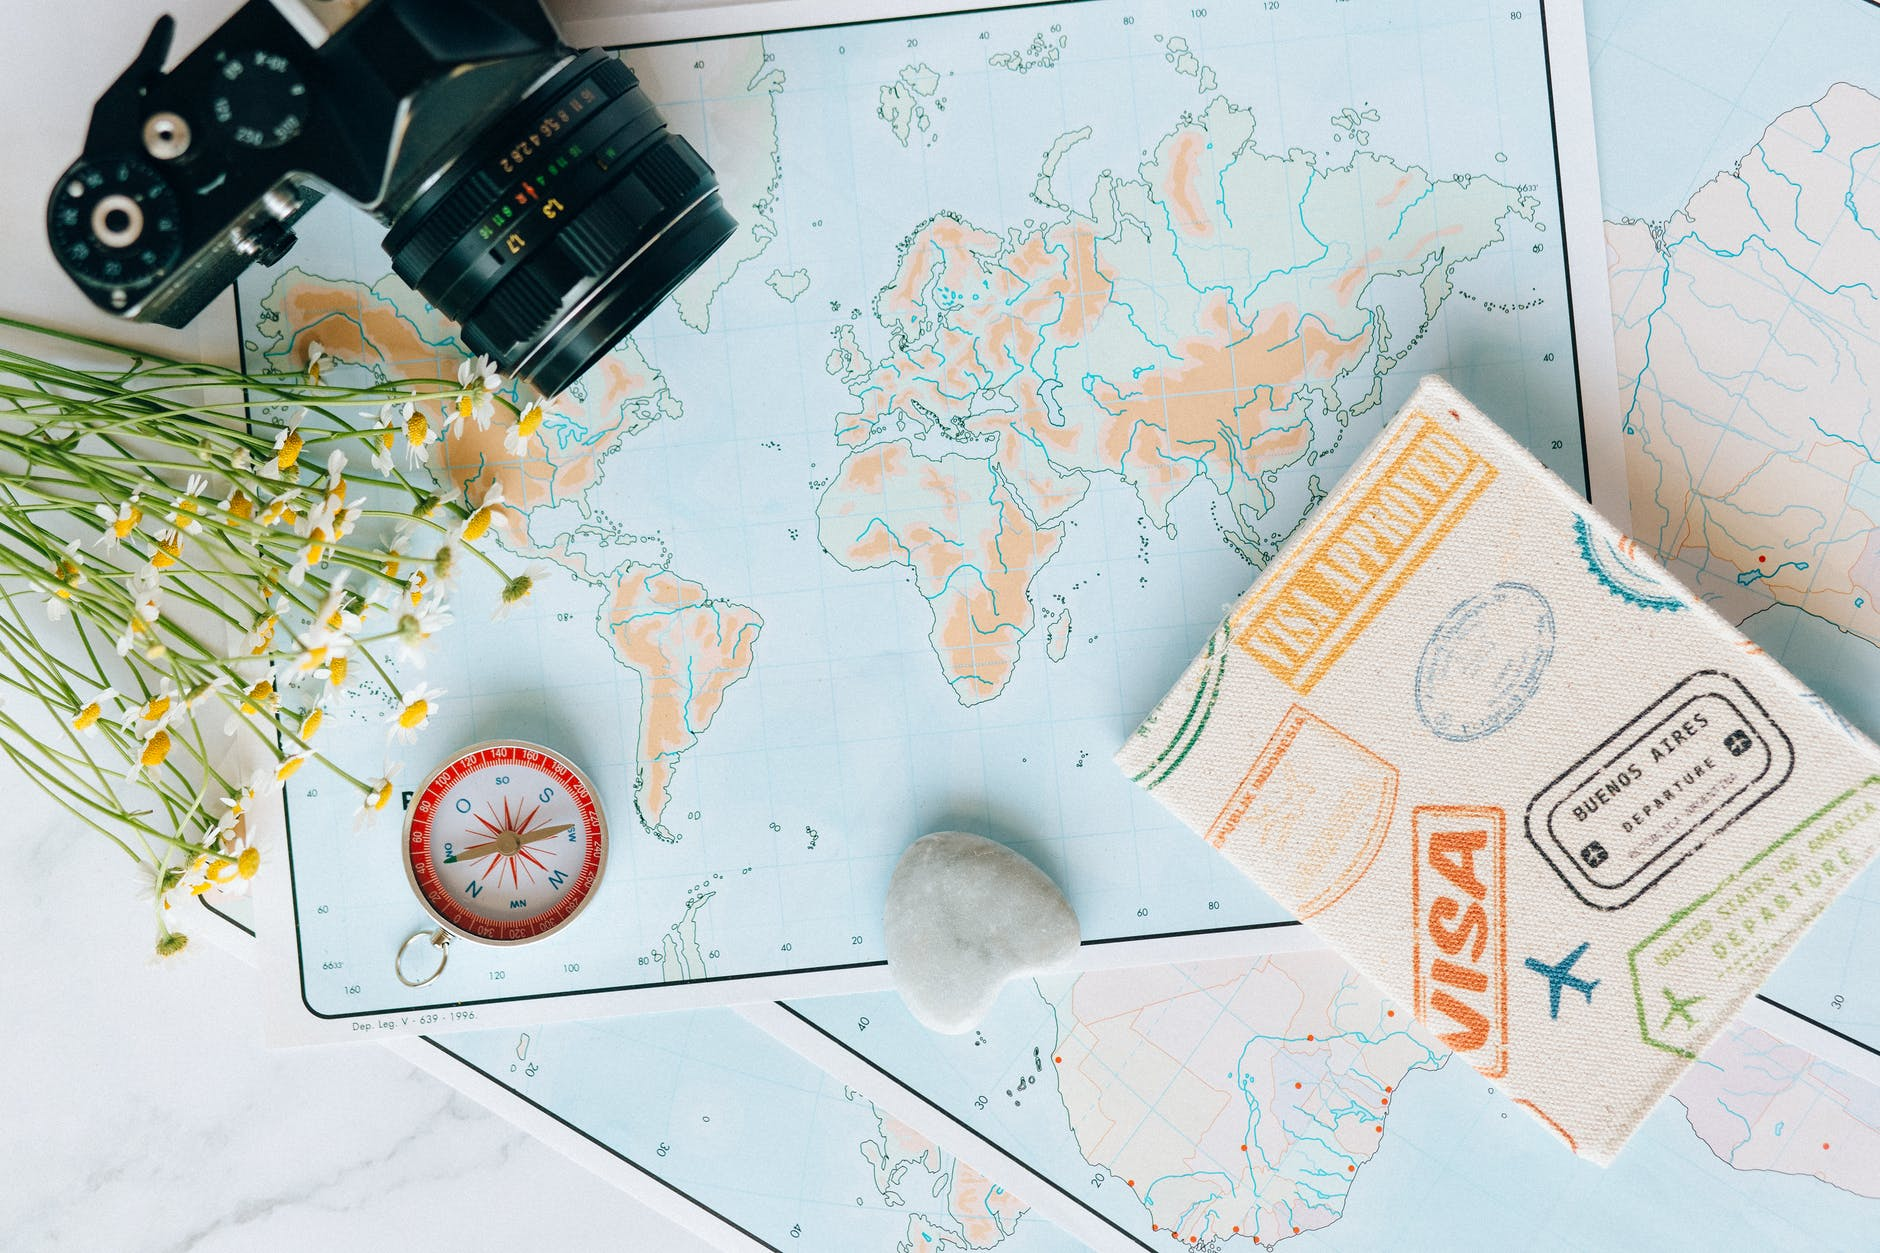 It is important to get your working visa sorted if you want to work overseas